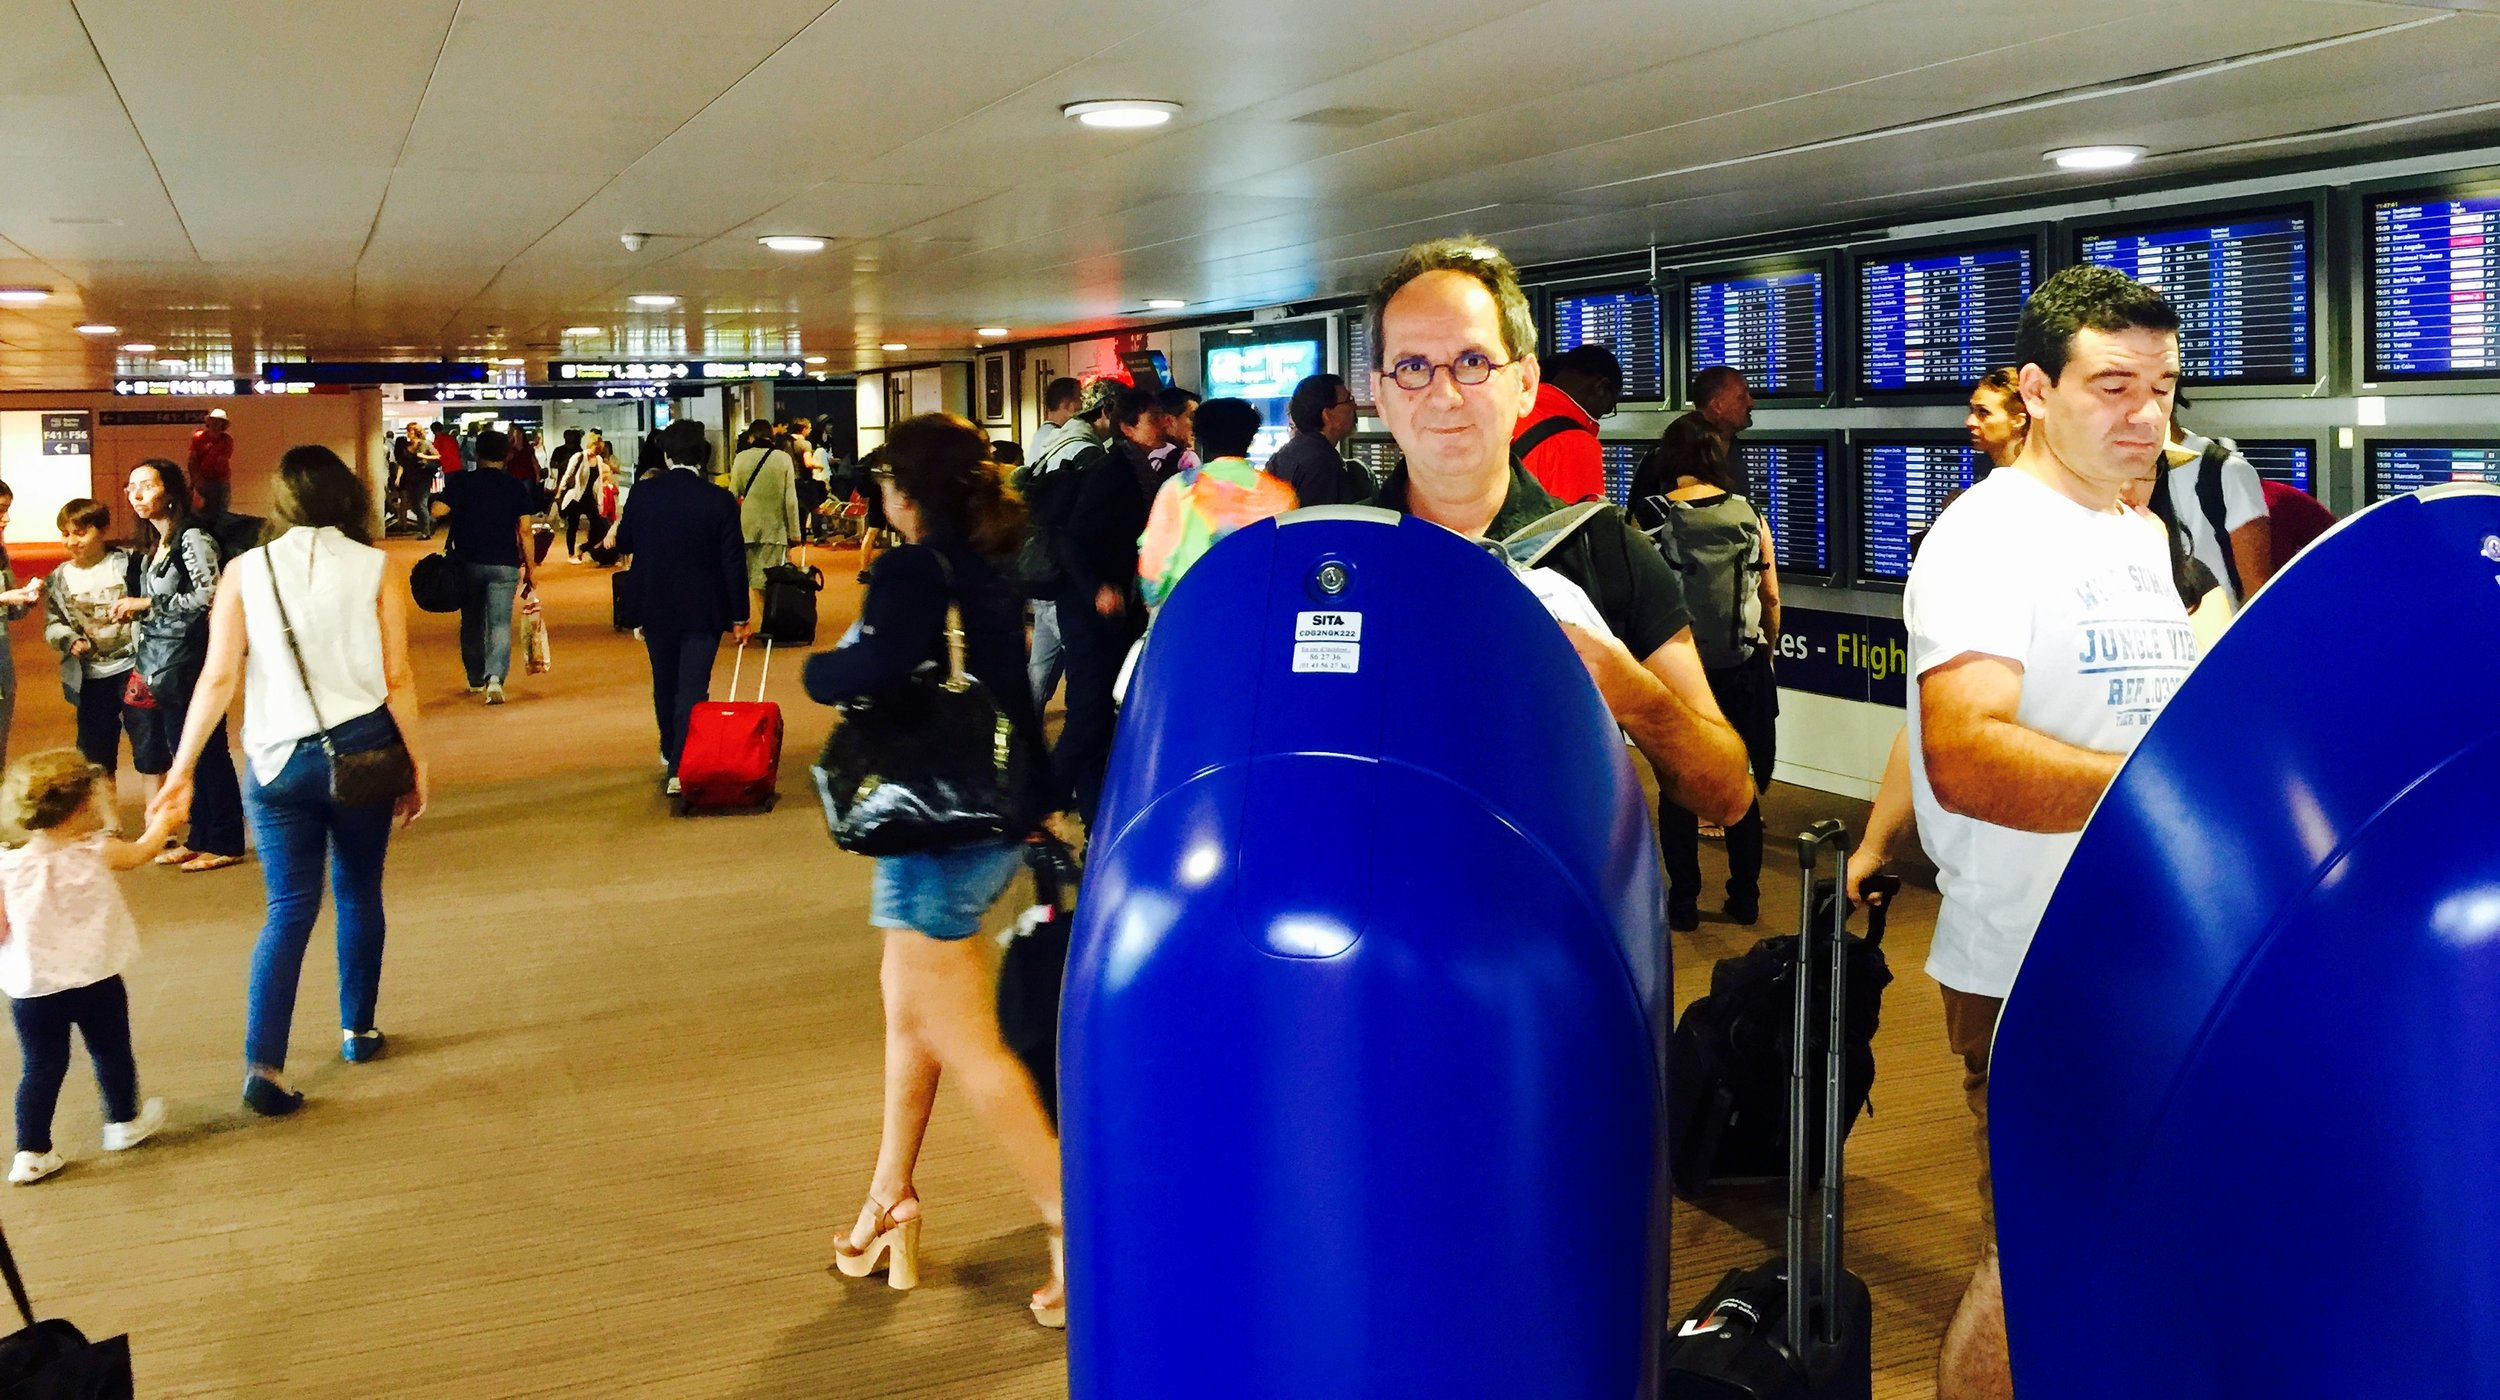 Paris Charles De Gaulle Airport - digital changing the travel experience